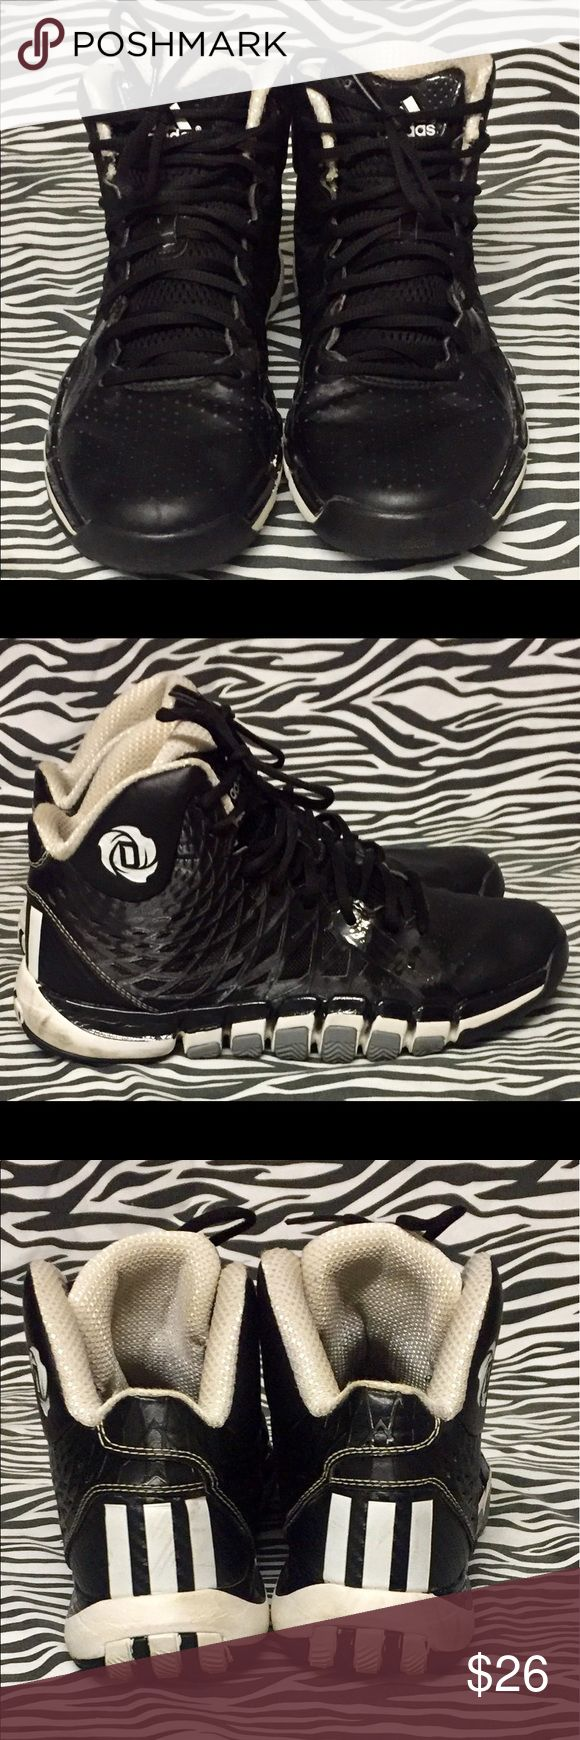 Boys 7.5 Black/White Adidas Hi Tops. Black/White lace up Hi Tops. Little signs of wear on shoes and bottoms. Shoes are in good condition. Adidas Shoes Sneakers